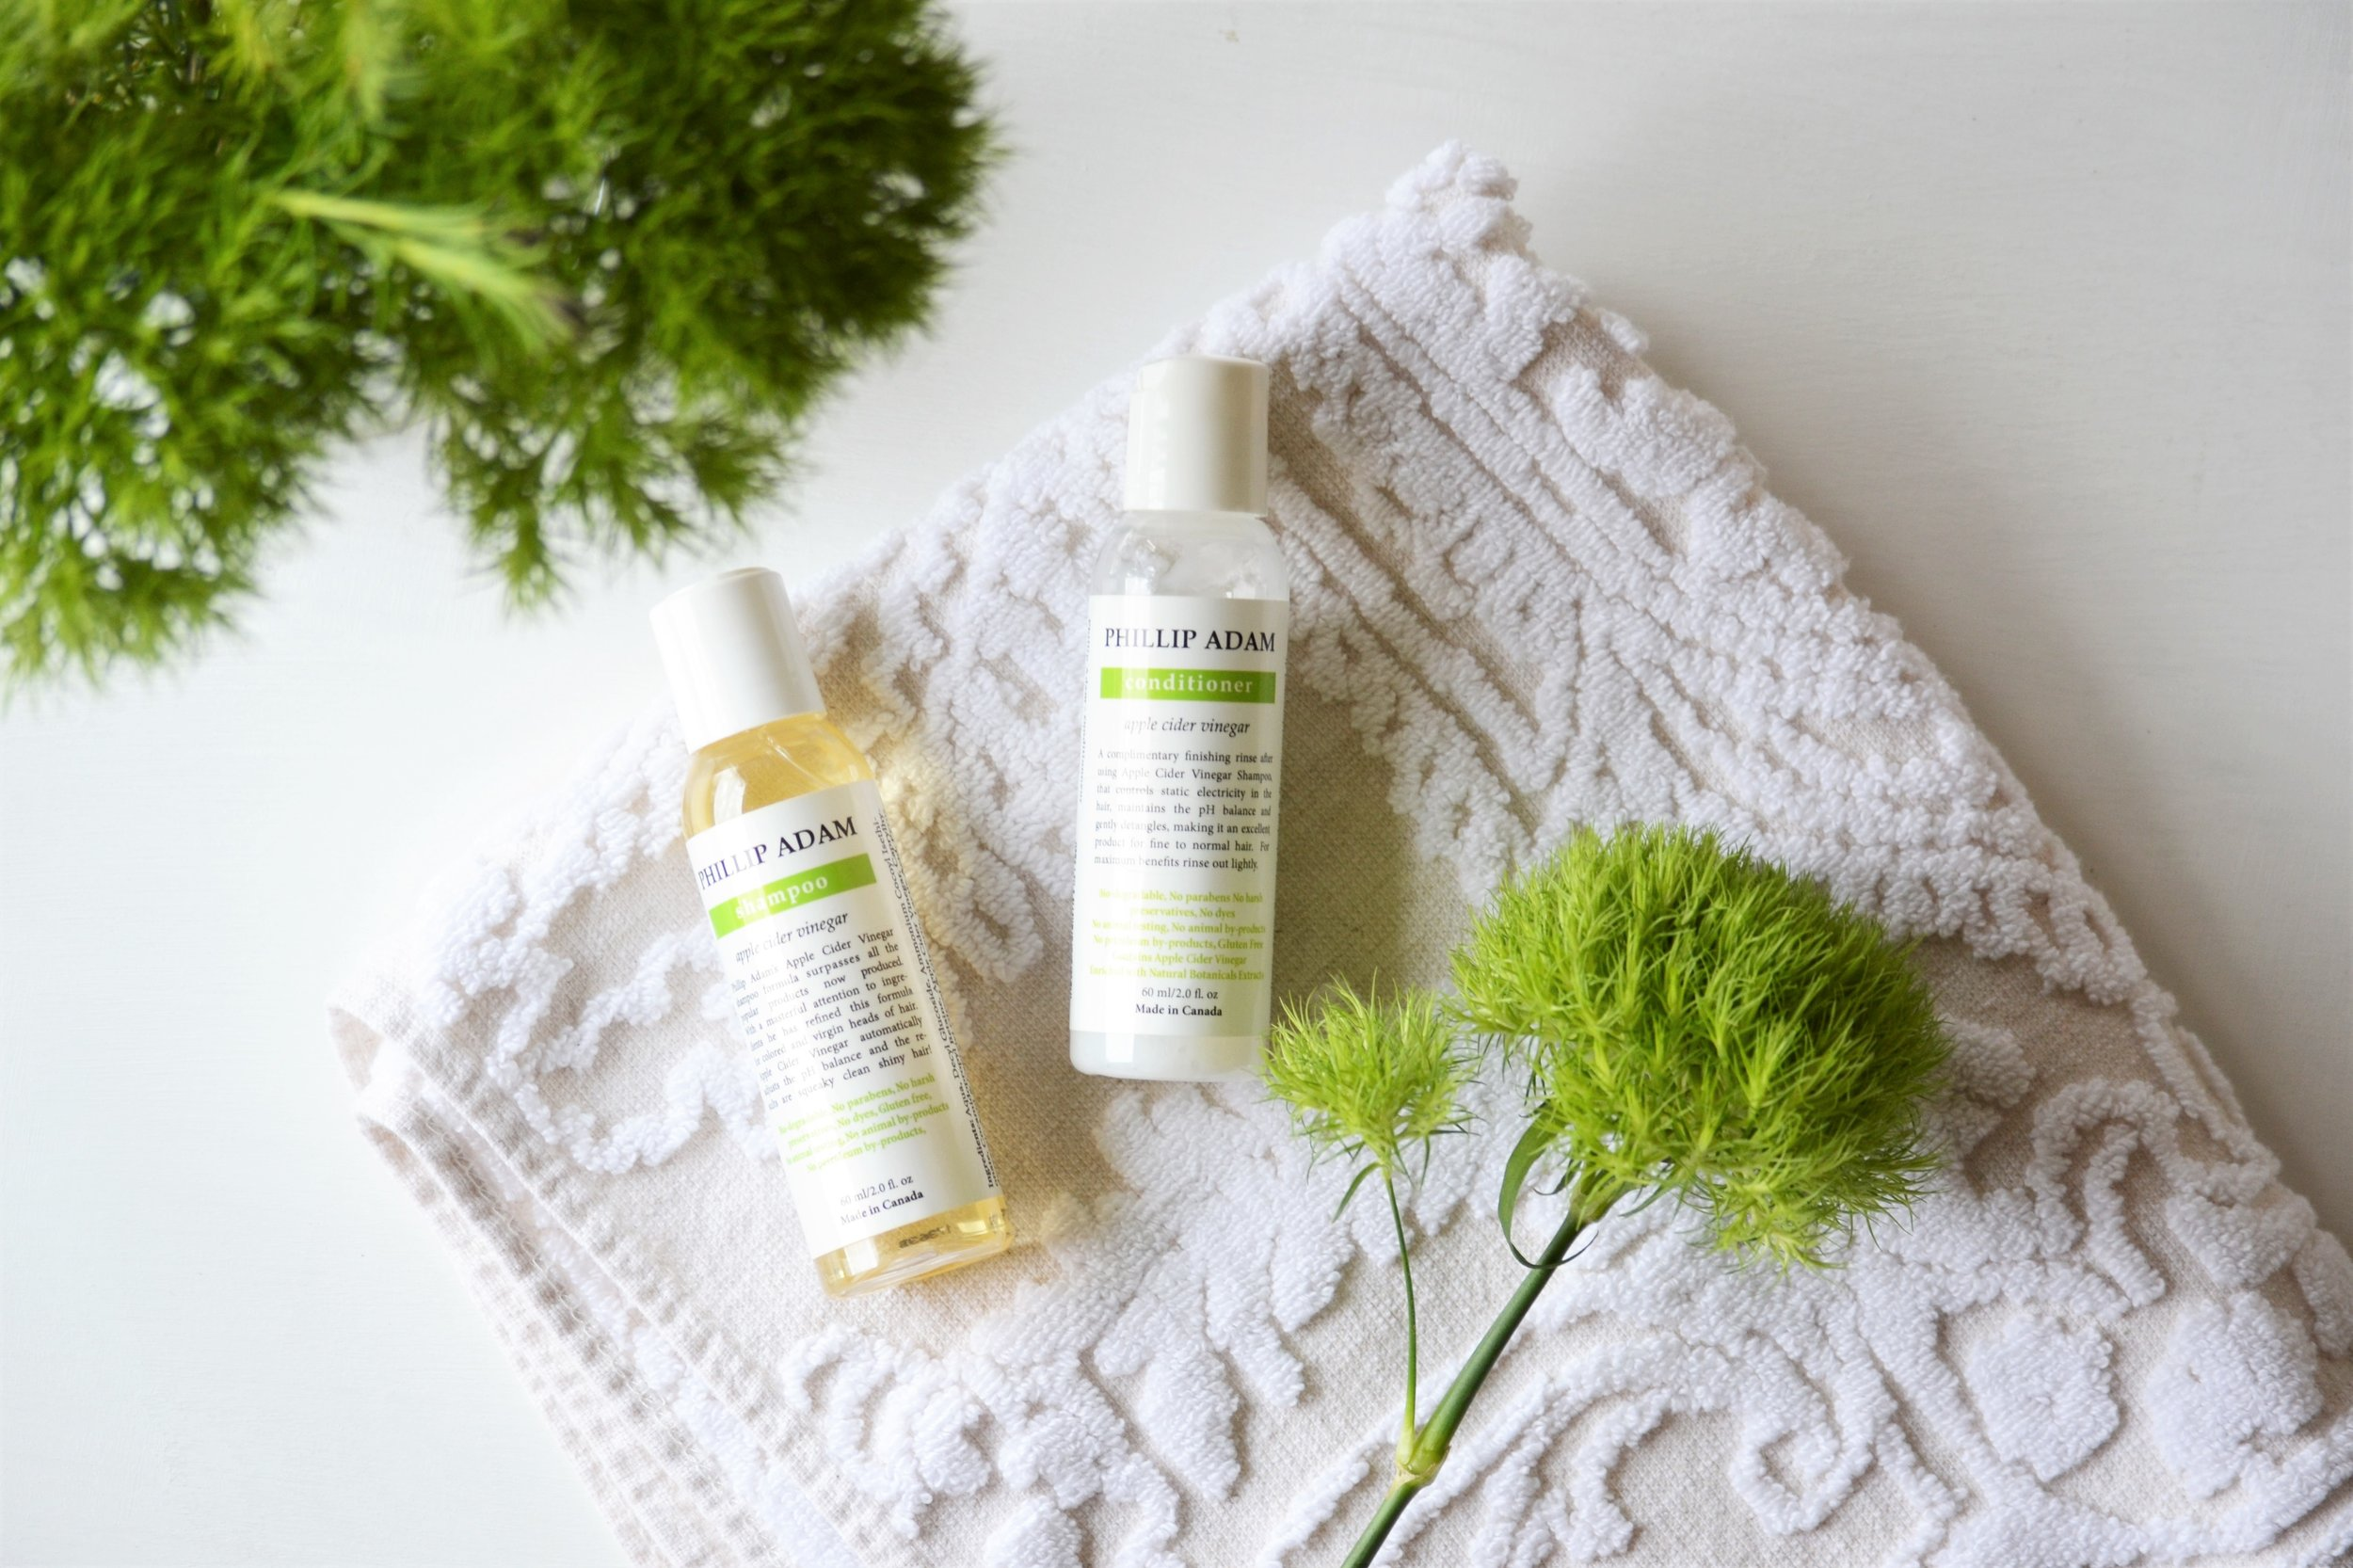 Going Natural: Phillip Adam's Shampoo & Conditioner -